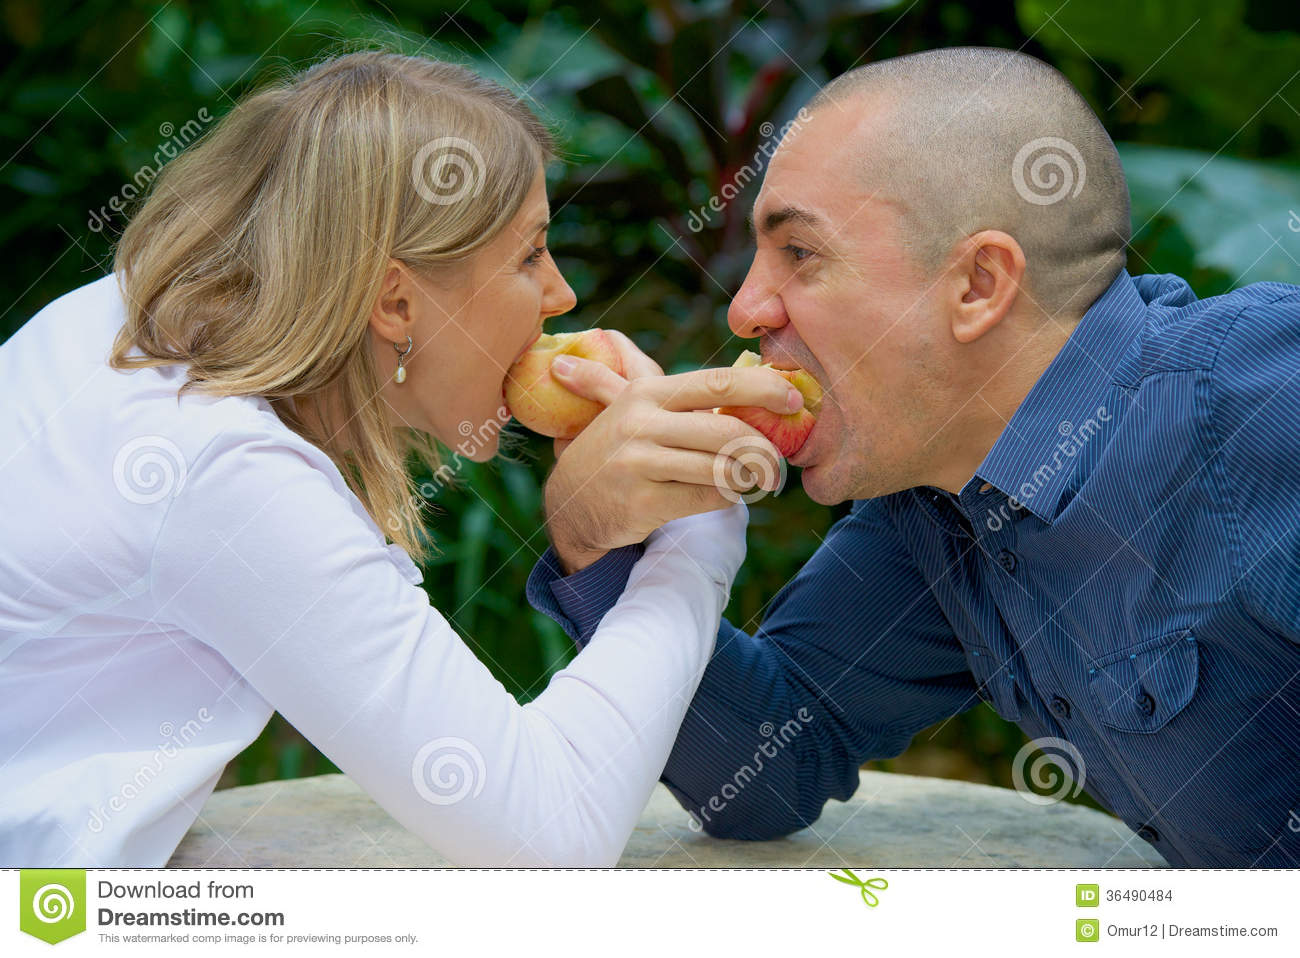 Eat From Husband